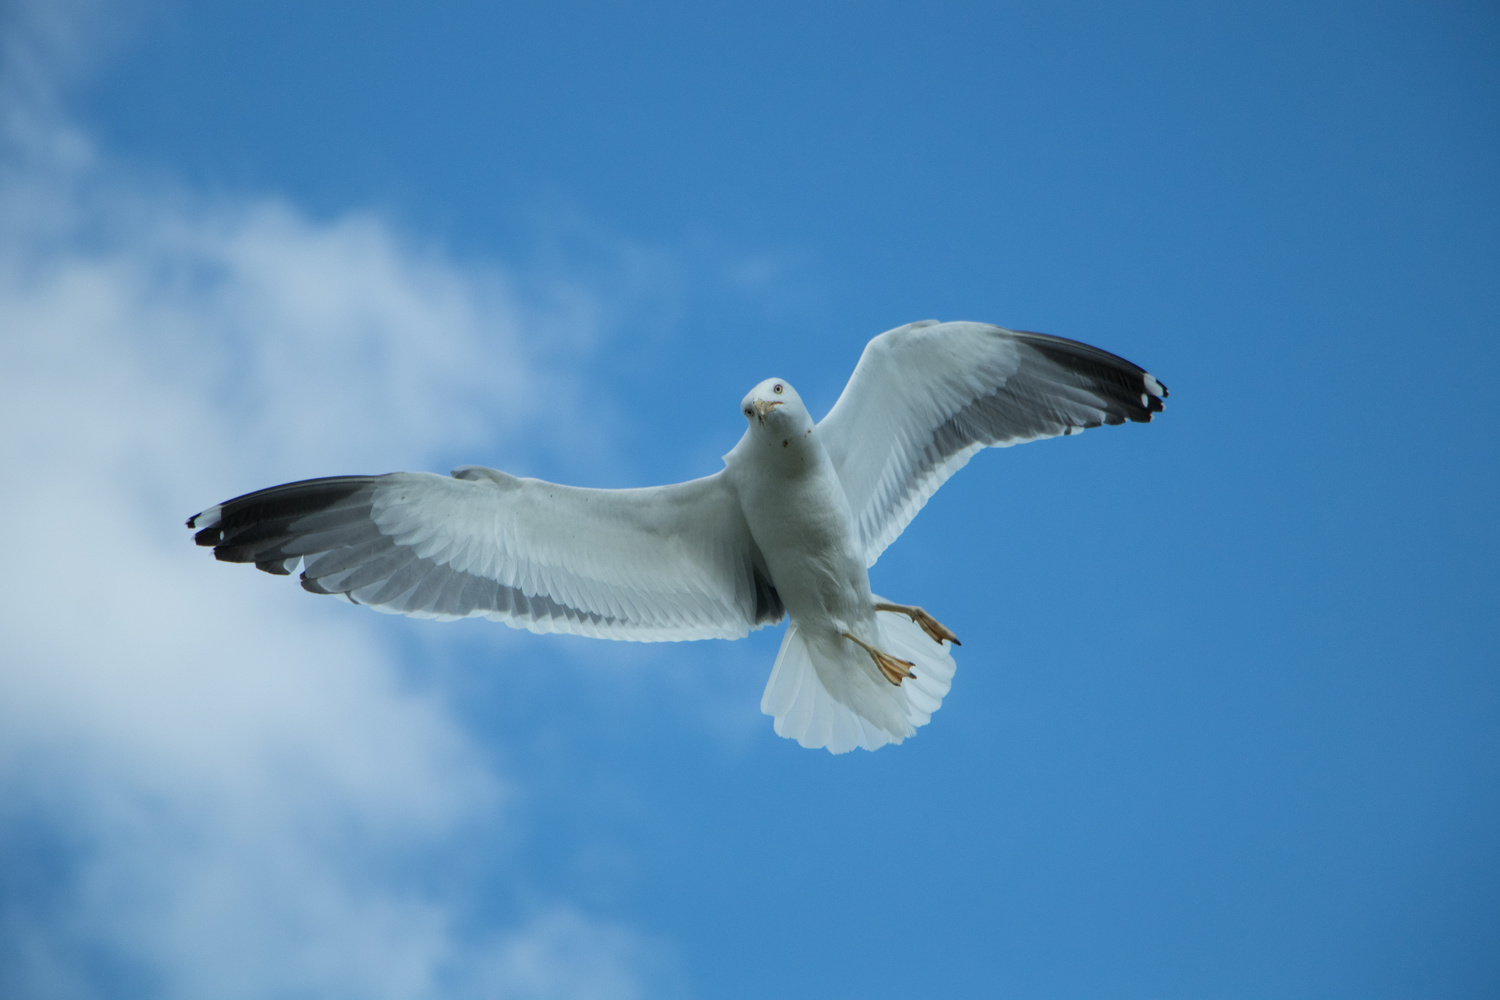 Seagull in Flight by Michael Whitney